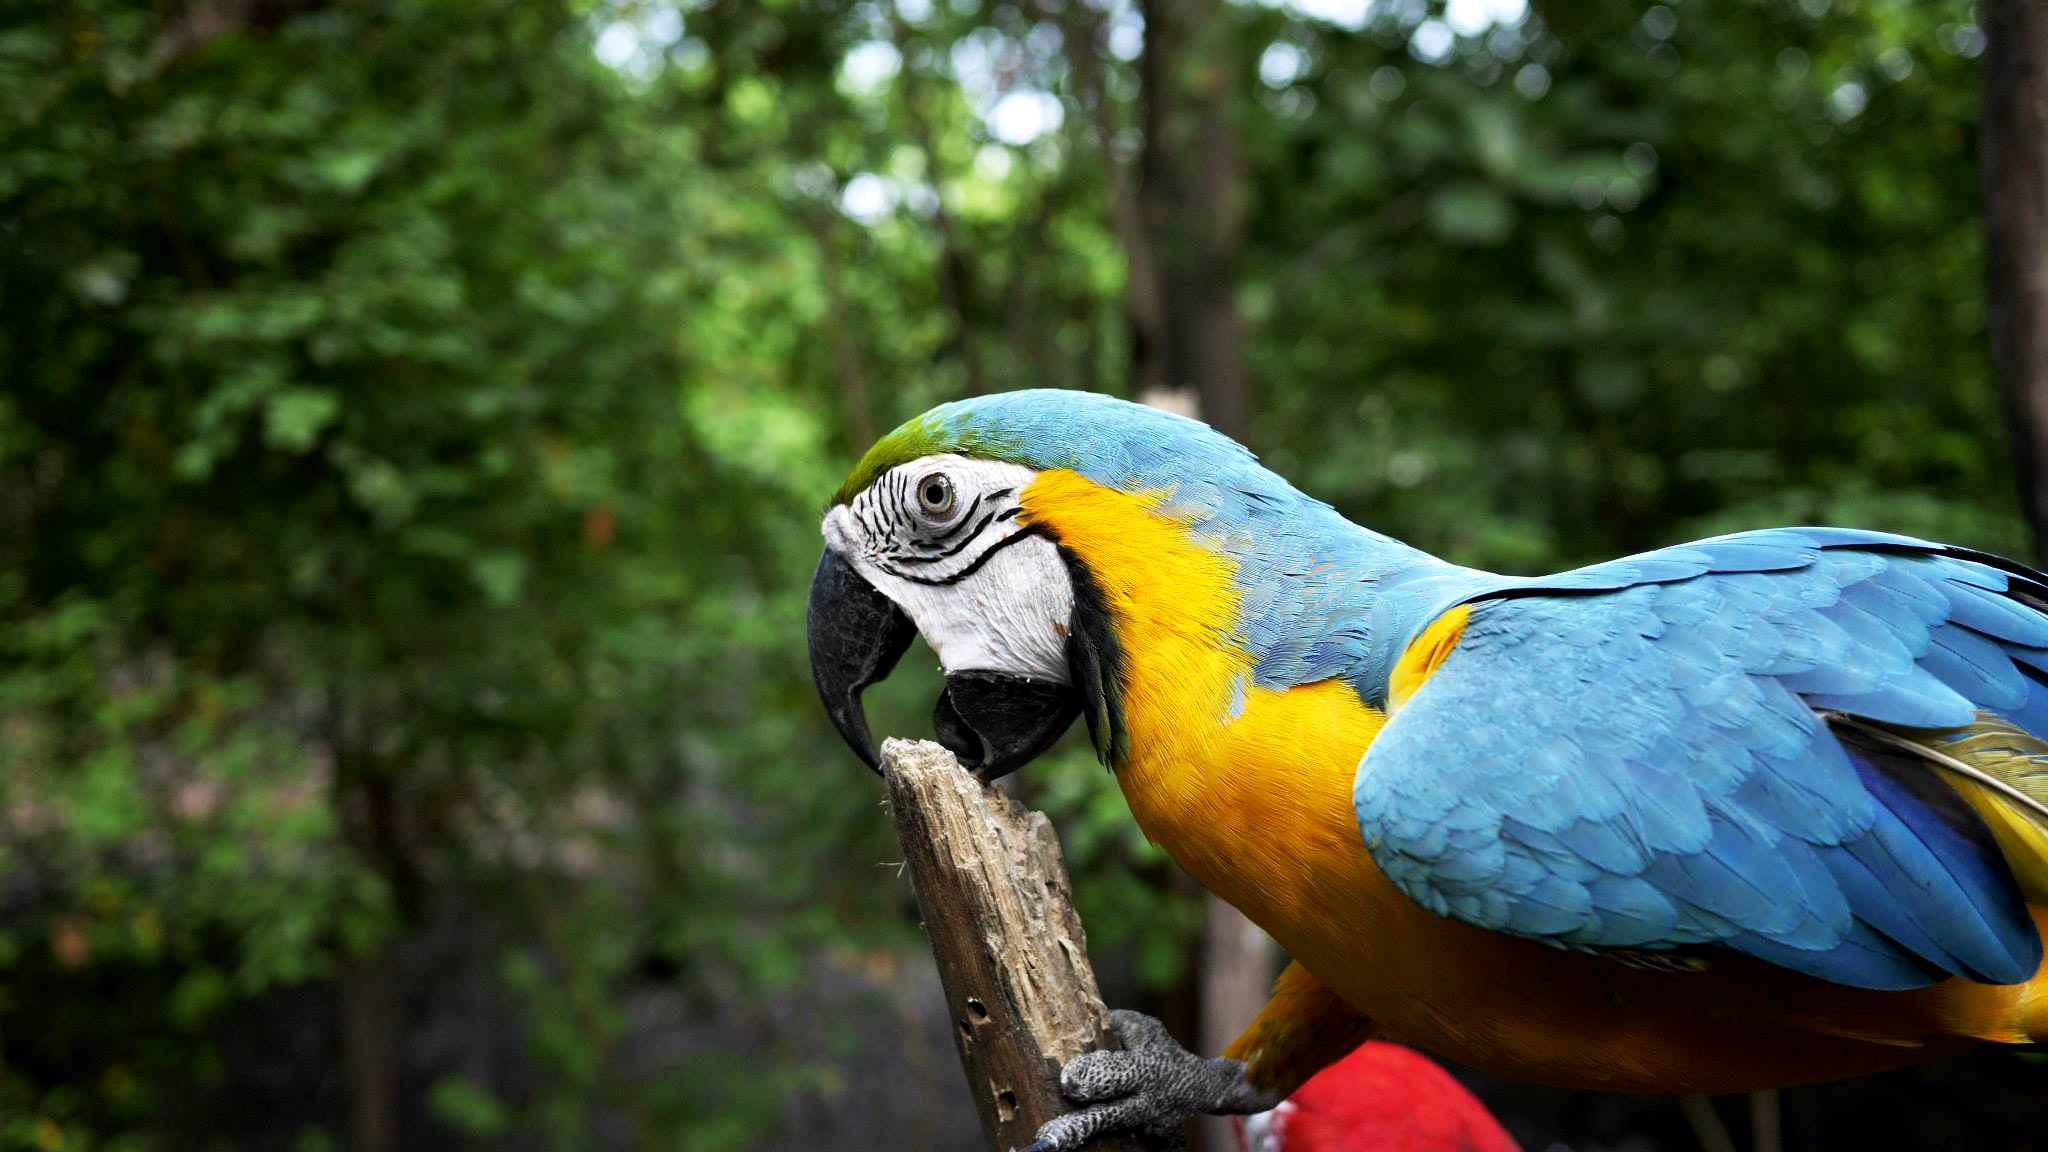 A blue and yellow parrot biting a stump of wood in a dense, green forest